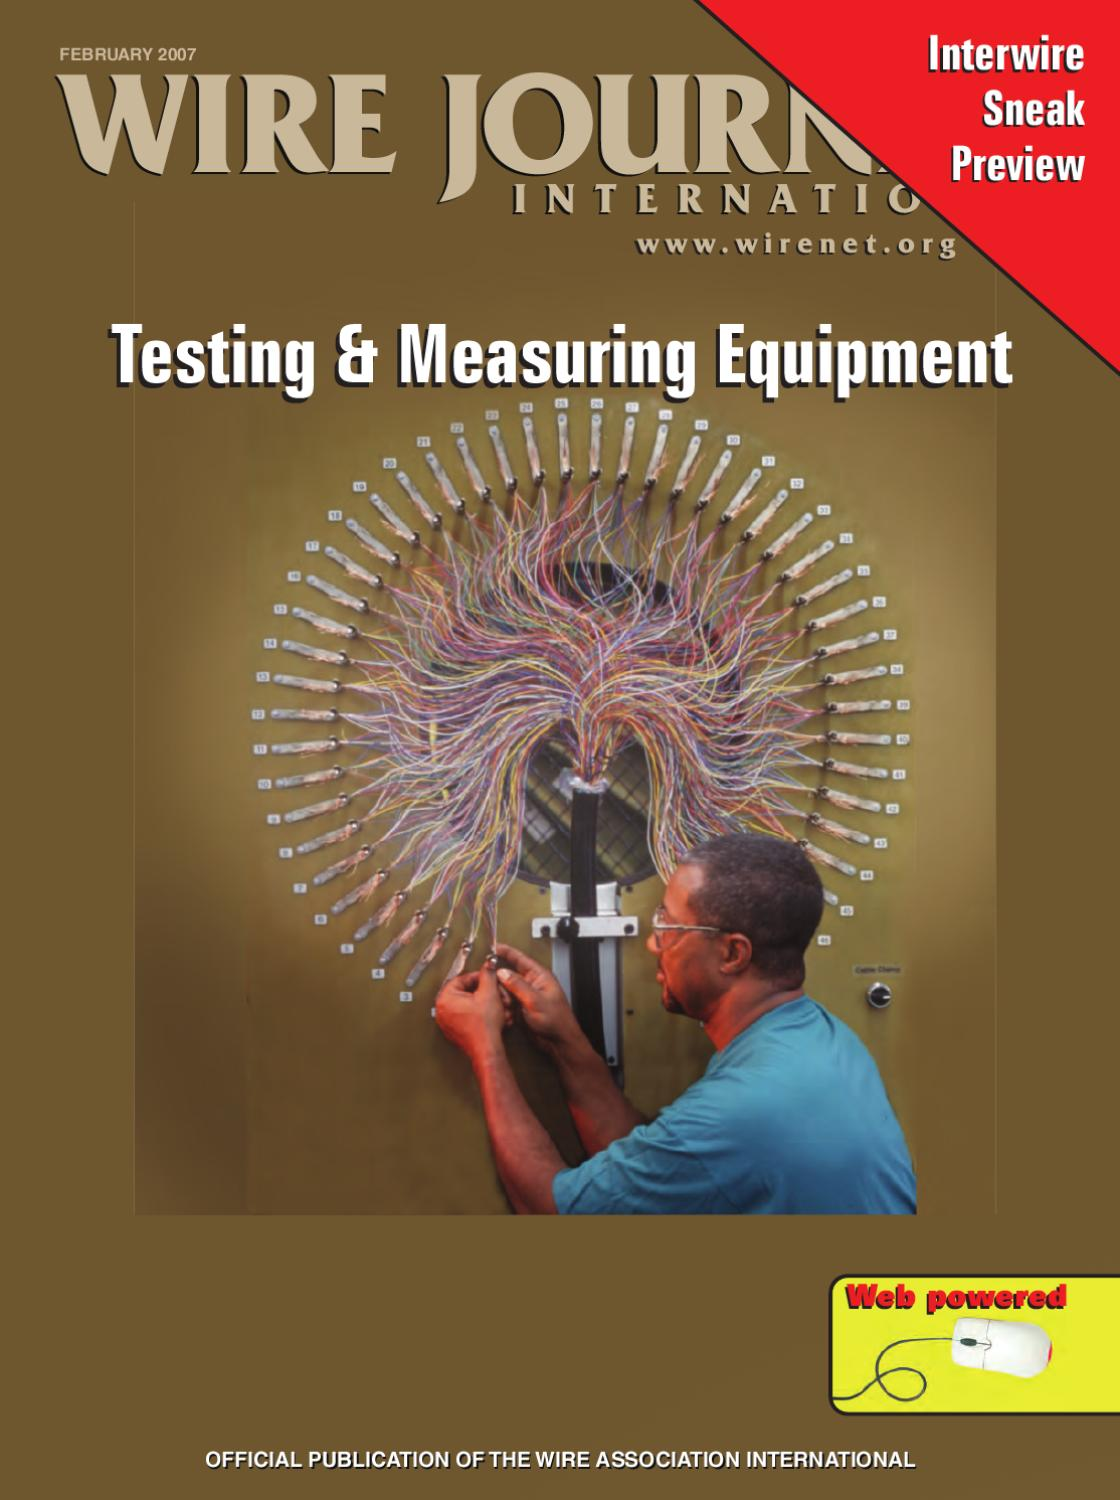 hight resolution of testing measuring equipment by wire journal international inc issuu